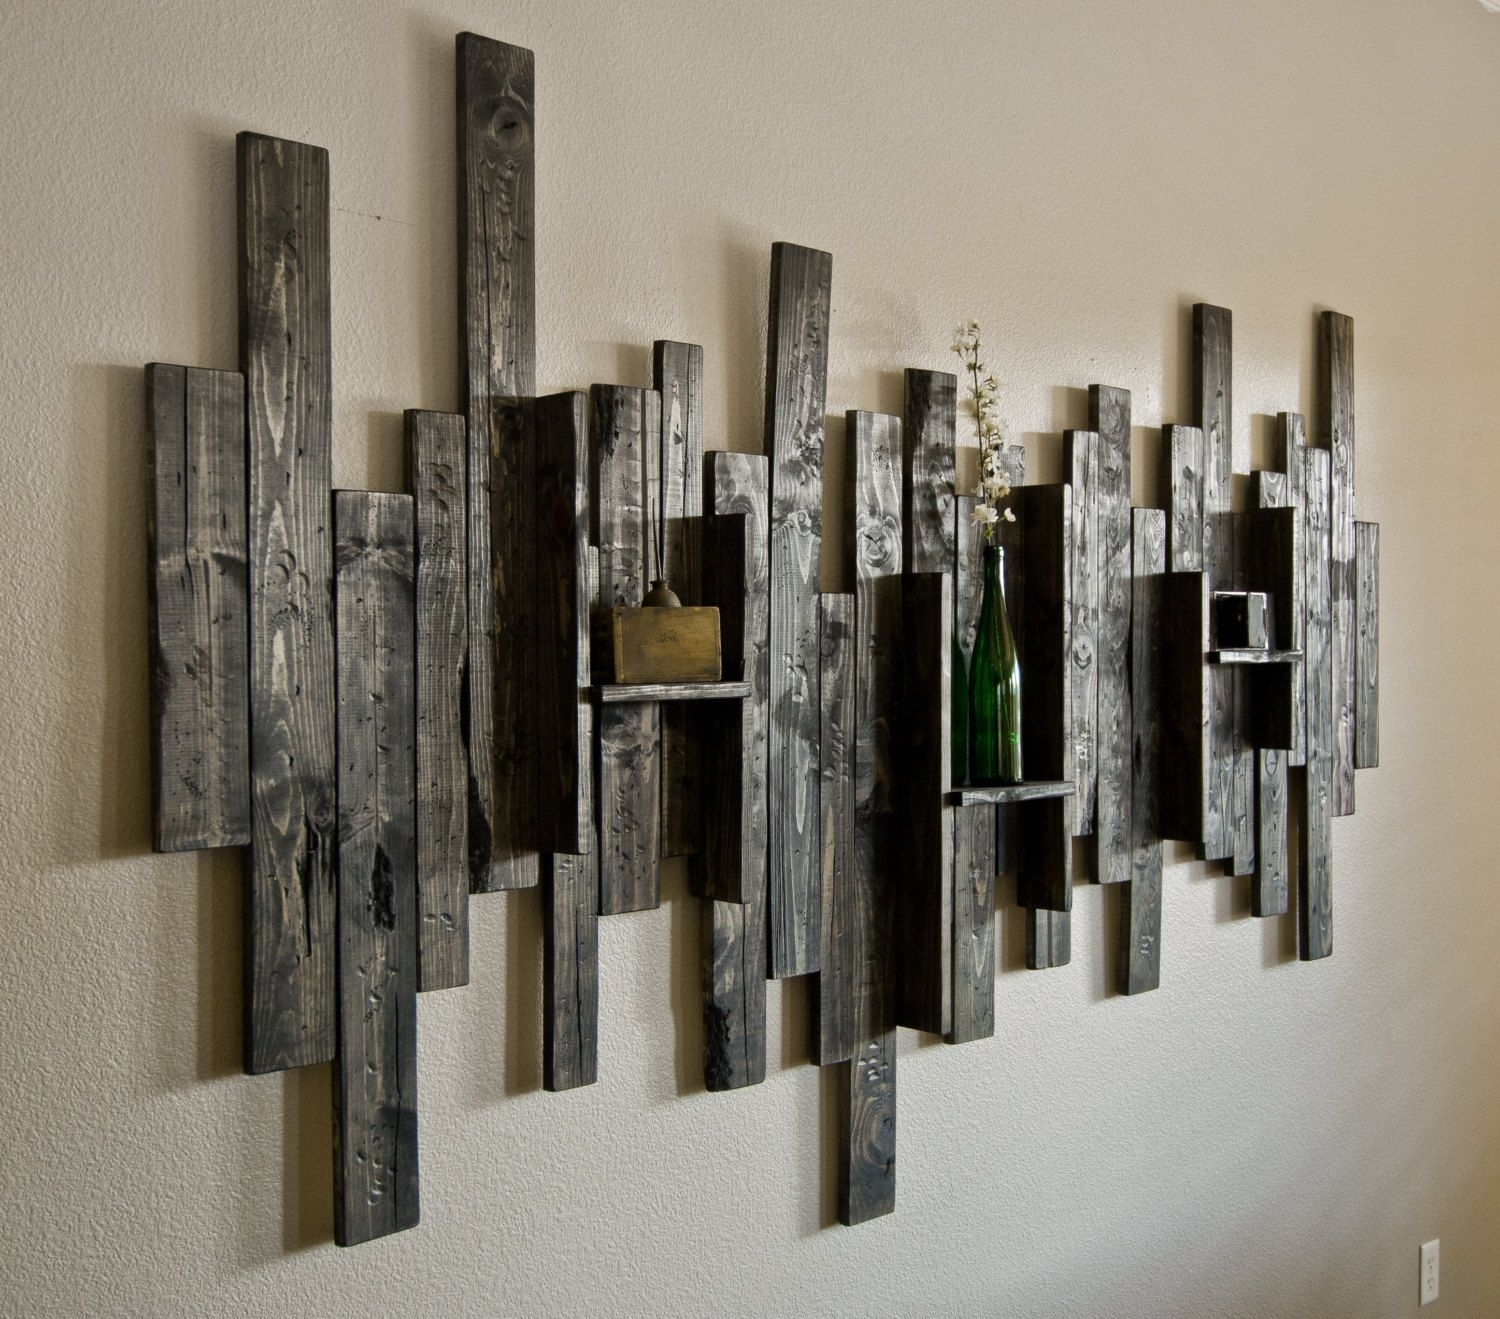 Rustic Display Shelf Decorative Wall Art | Diy | Pinterest | Display for Large Rustic Wall Art (Image 17 of 20)